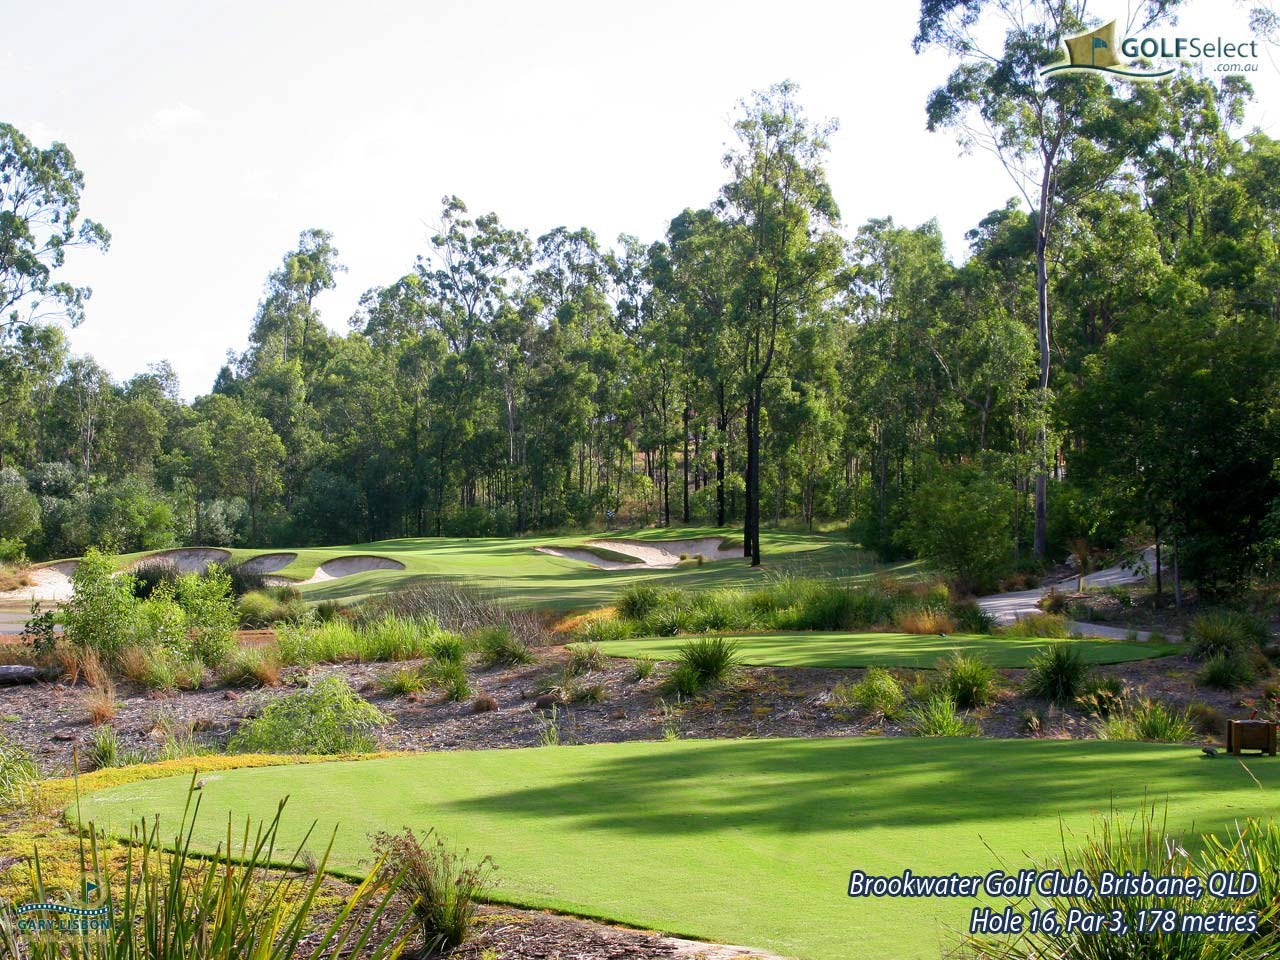 Brookwater Golf & Country Club Hole 16, Par 3, 178 metres